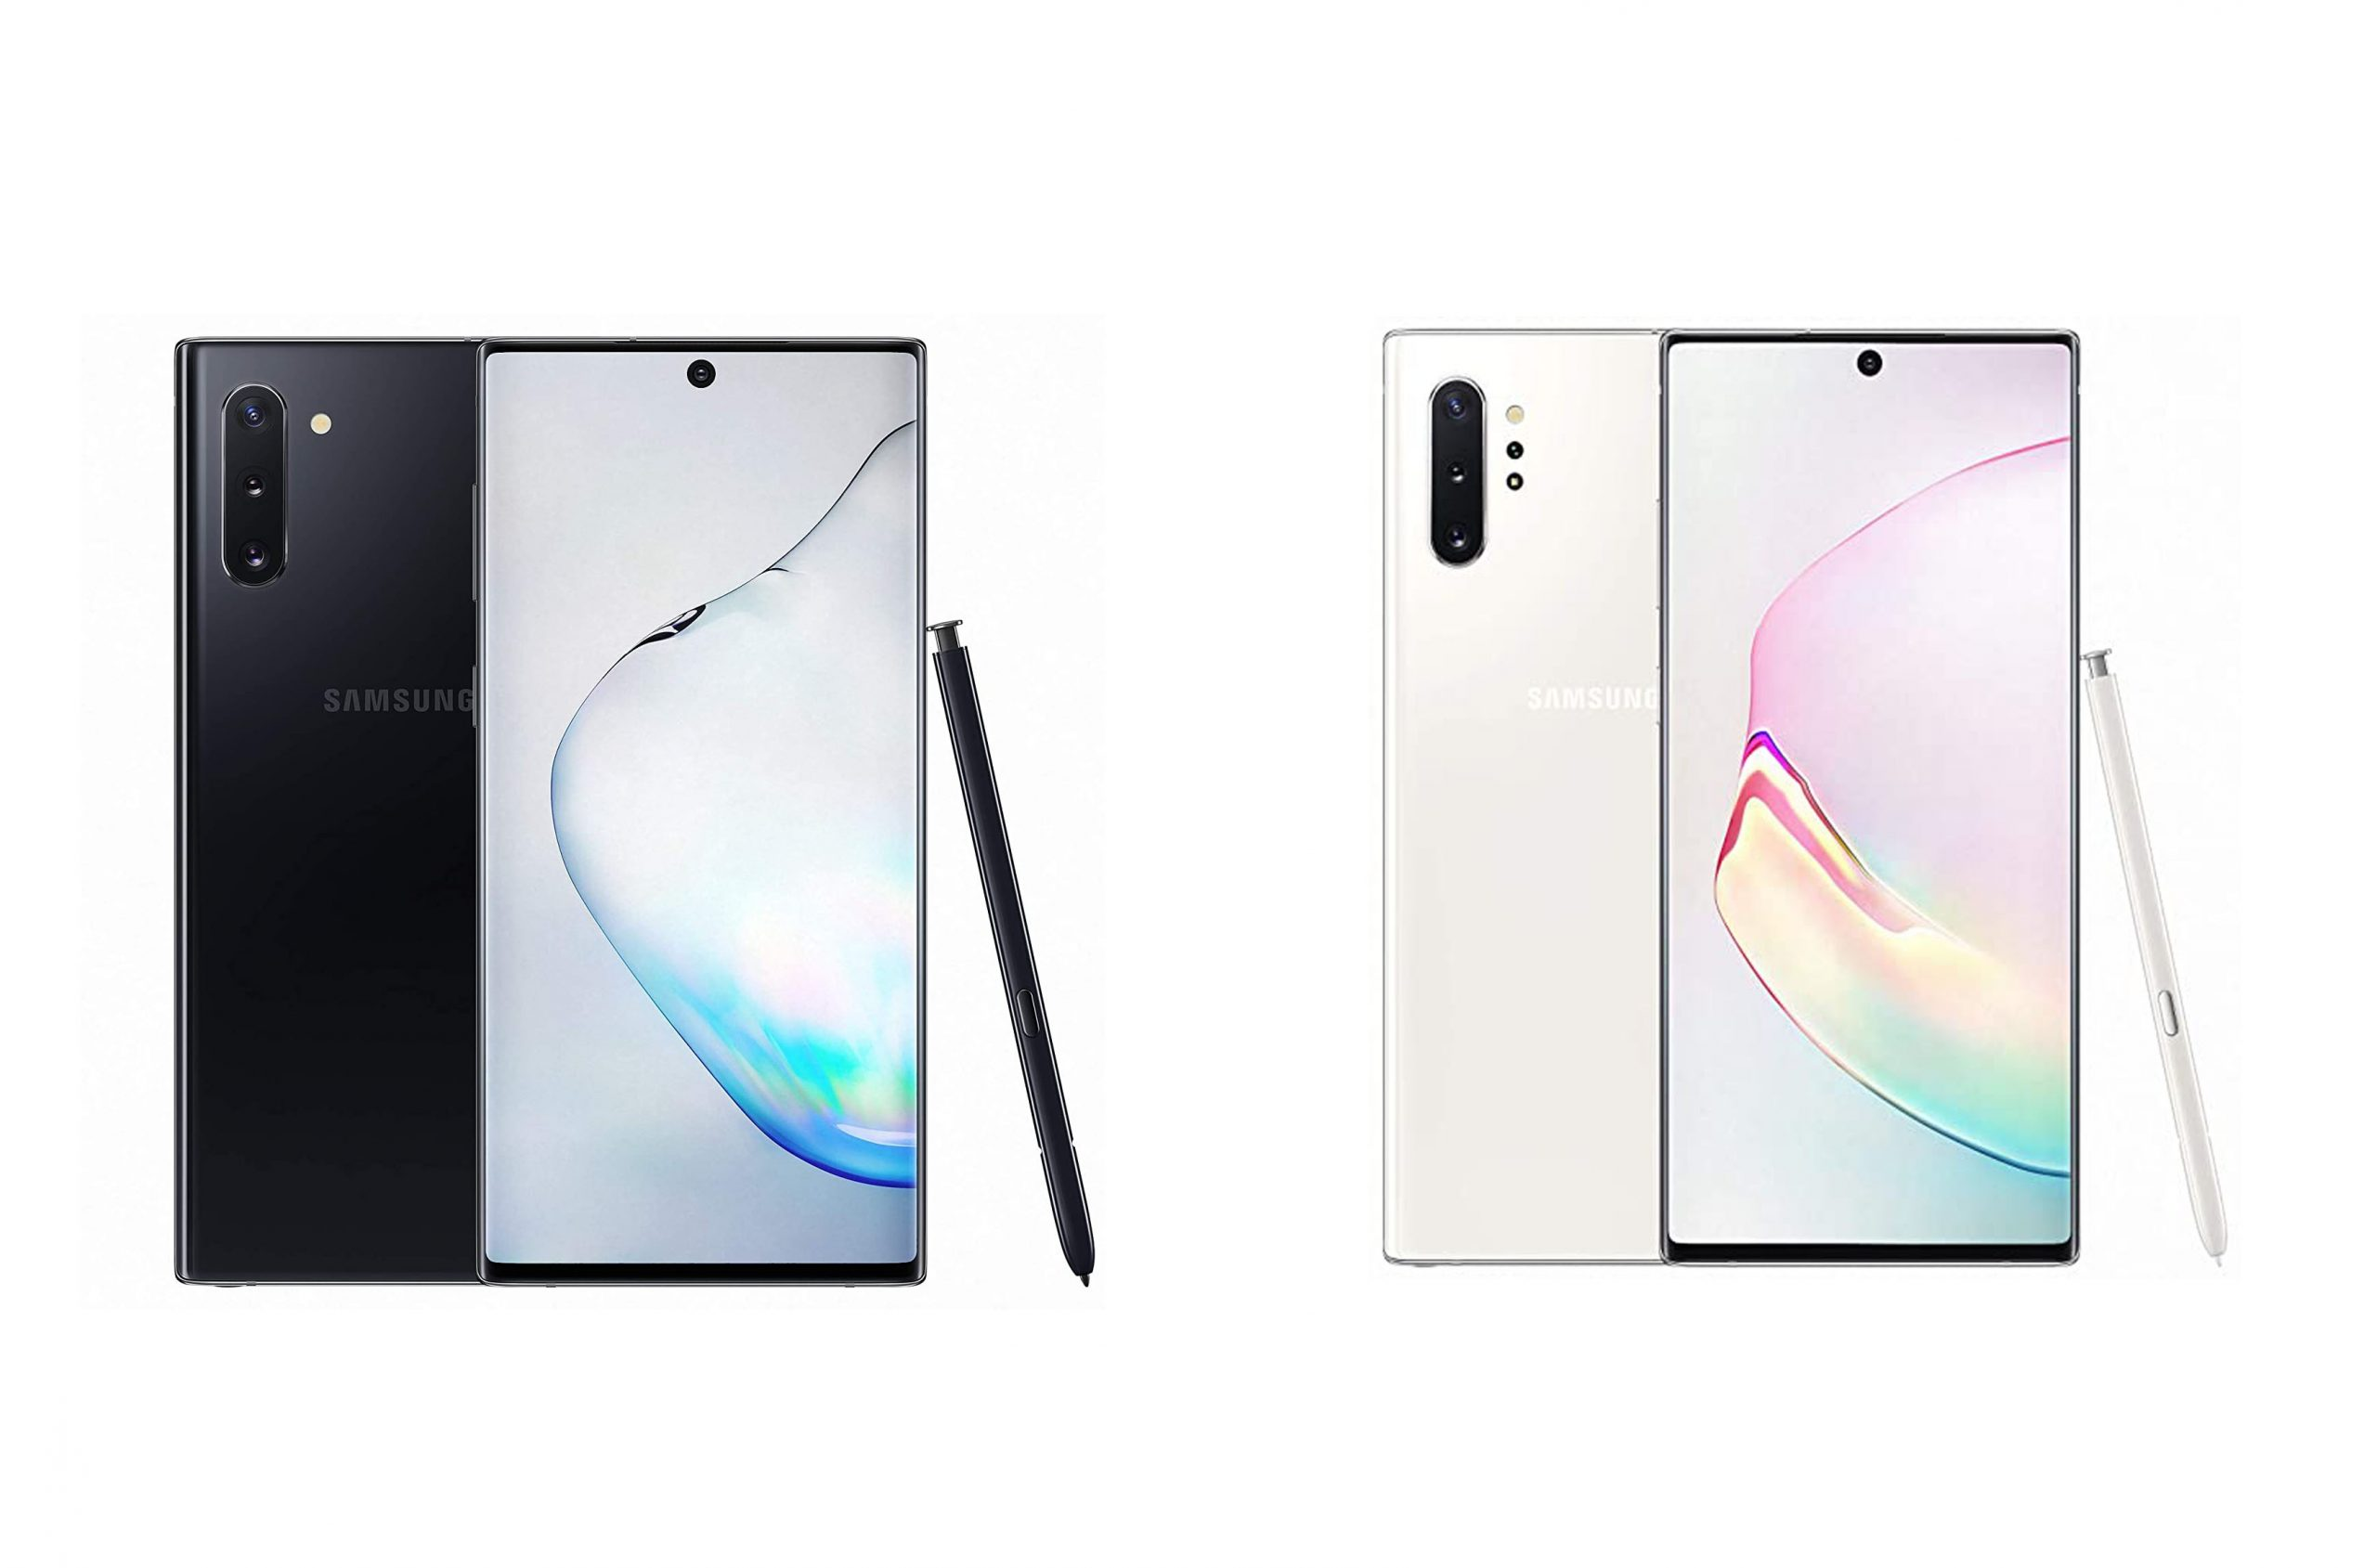 Samsung Galaxy Note 10 Series receiving August 2020 Security Patch update